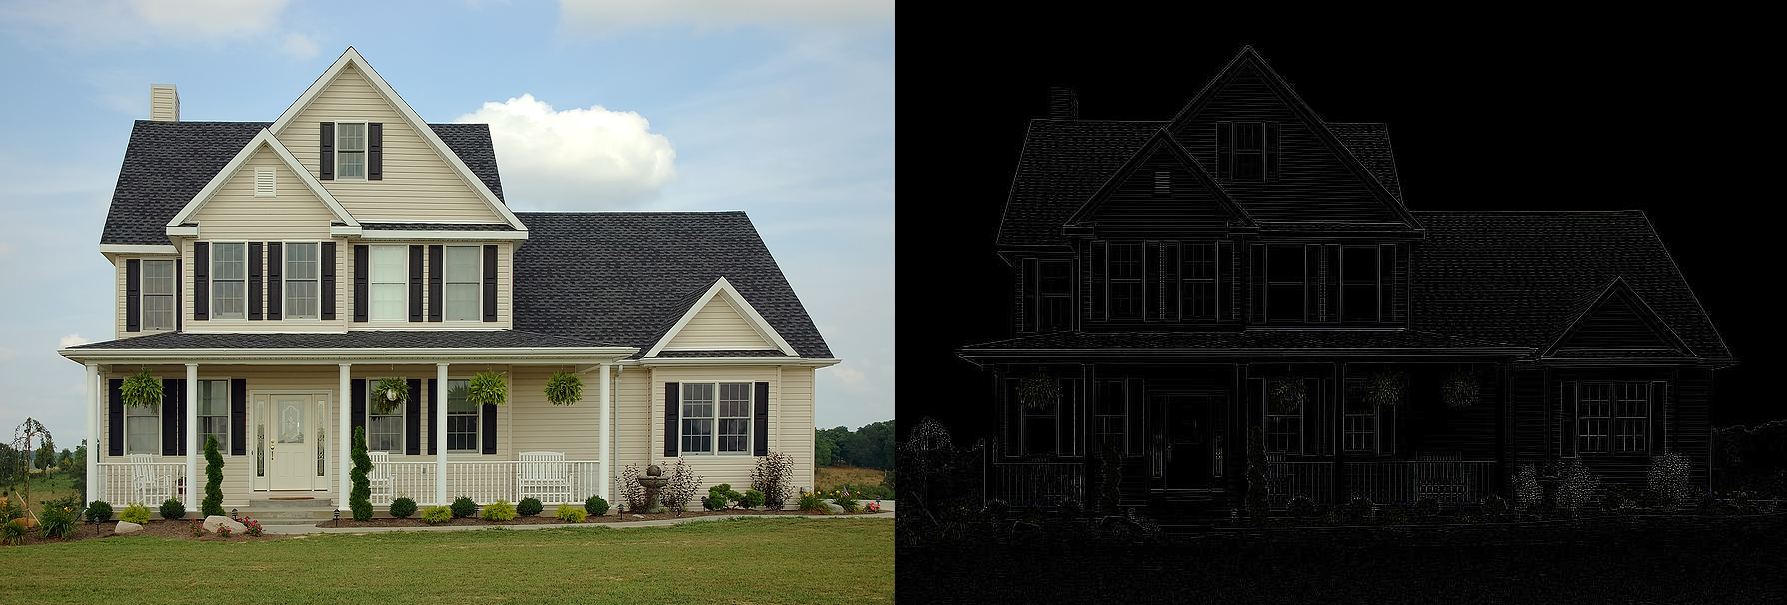 Edge detection convolution on a photo of a house.